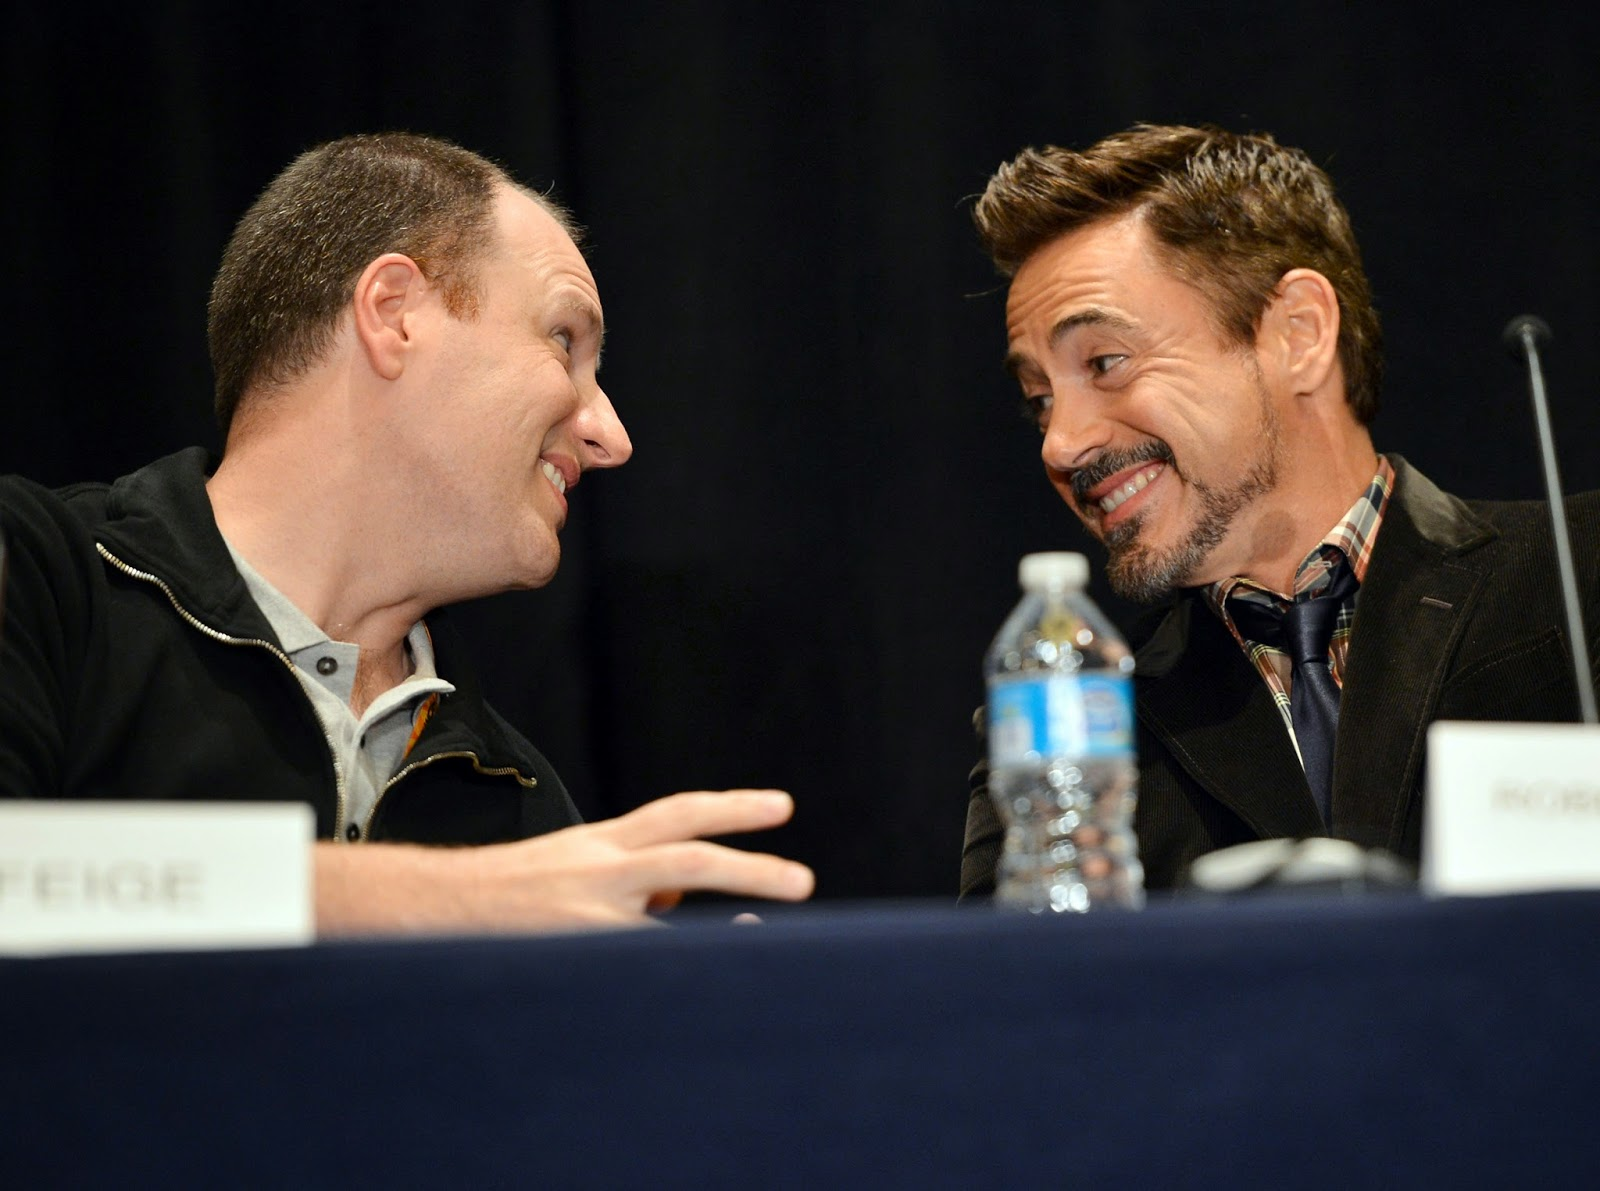 kevin feige robert downey jr rdj iron man marvel MCU avengers